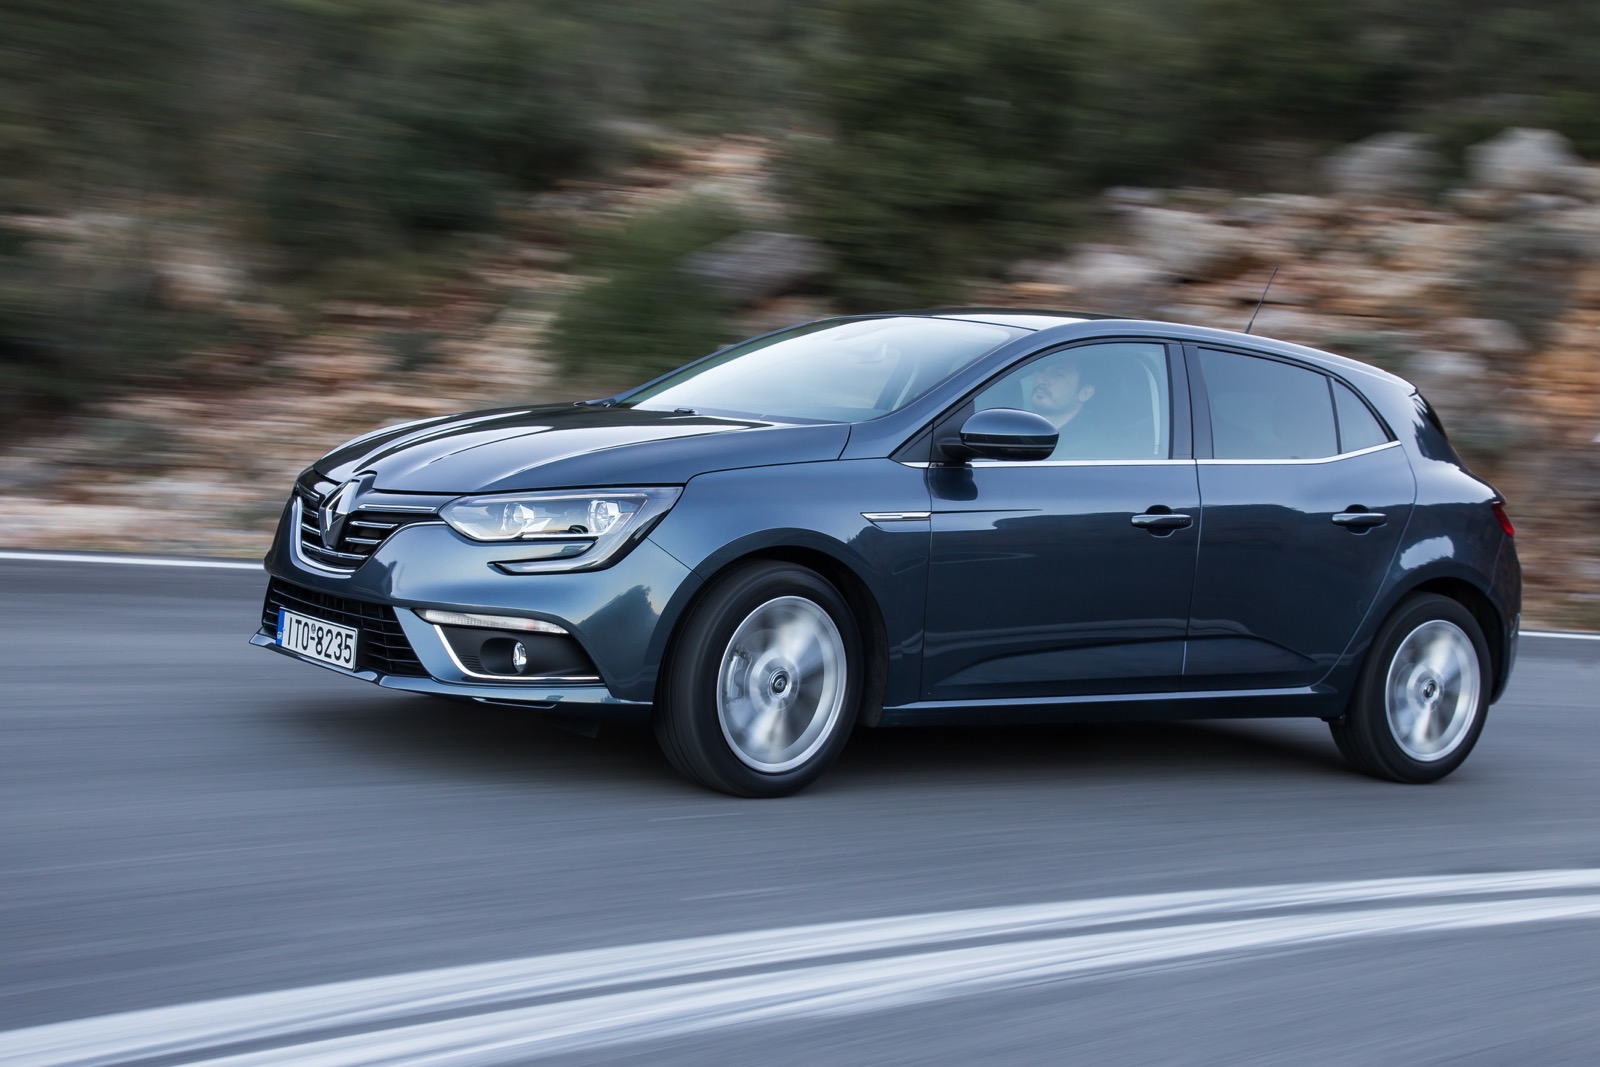 First_Drive_Renault_Megane_130